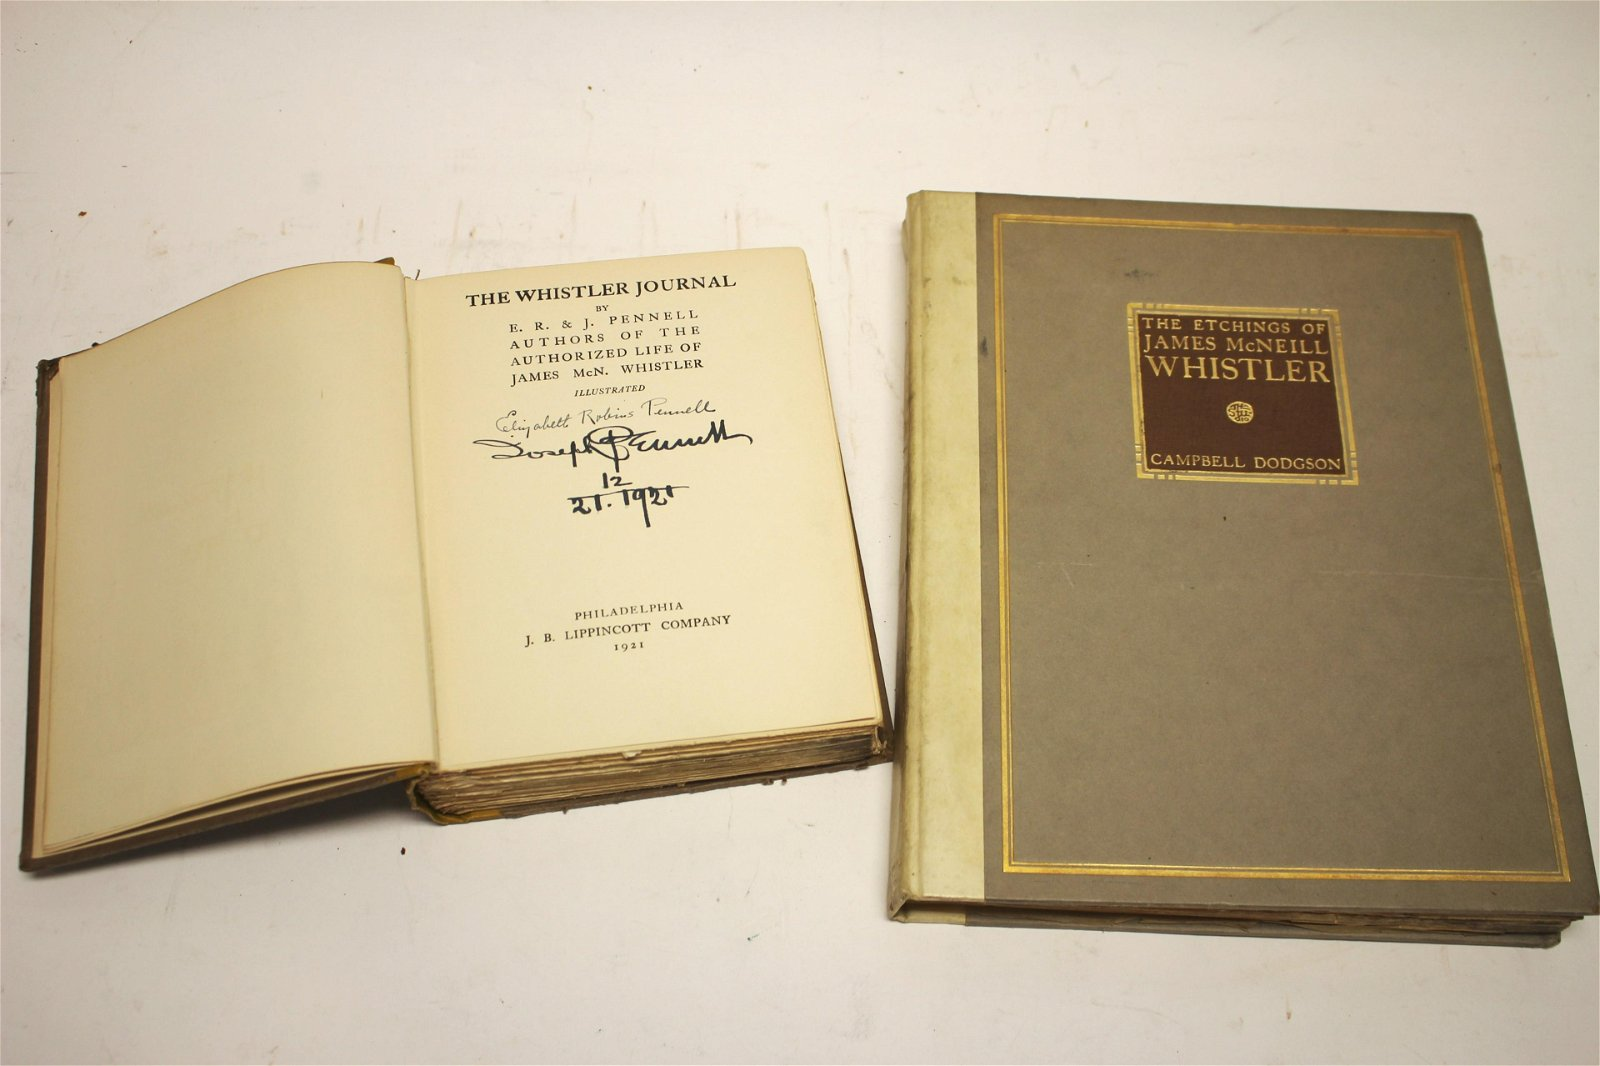 2 Books, 1 Author Signed The  Whistler Journal